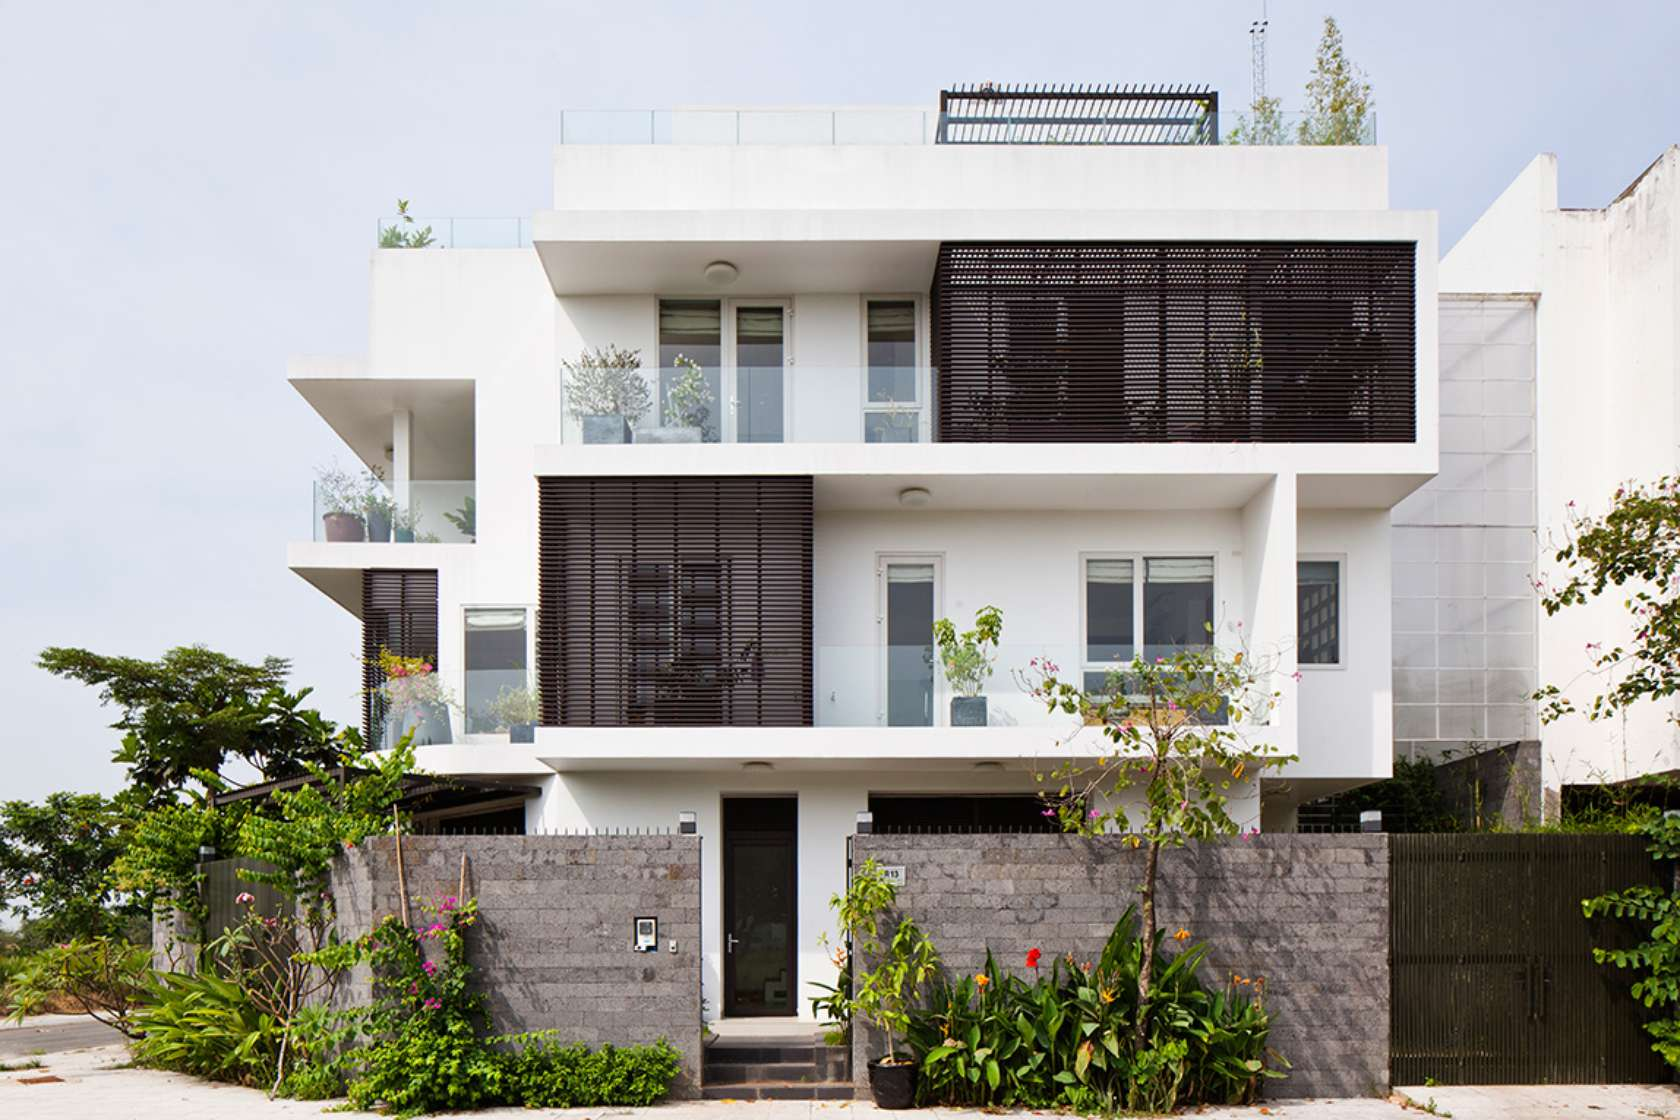 Western Newspaper compliment the words of the 3-storey townhouse with beautiful garden in Saigon - Beautiful House Number (1)